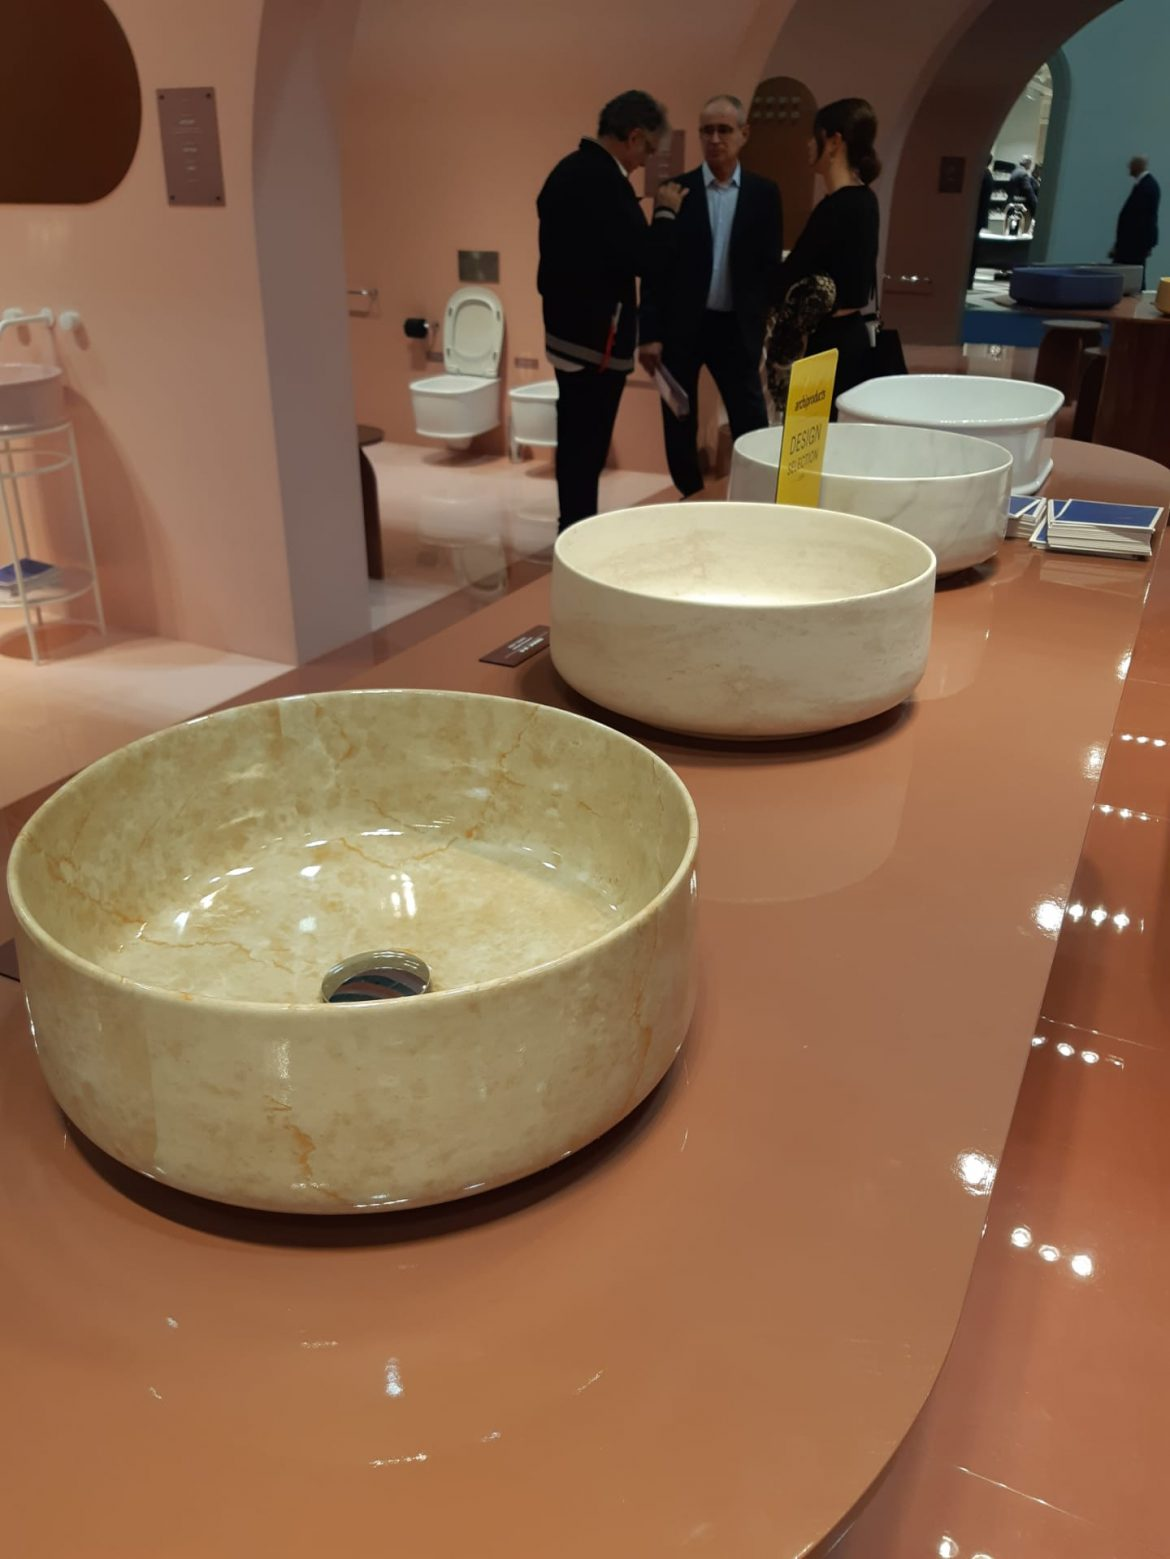 5 Bathroom Design Trends For 2020 Presented This Year At Cersaie bathroom design trends 5 Bathroom Design Trends For 2020 Presented This Year At Cersaie 5 Bathroom Design Trends For 2020 Presented This Year At Cersaie